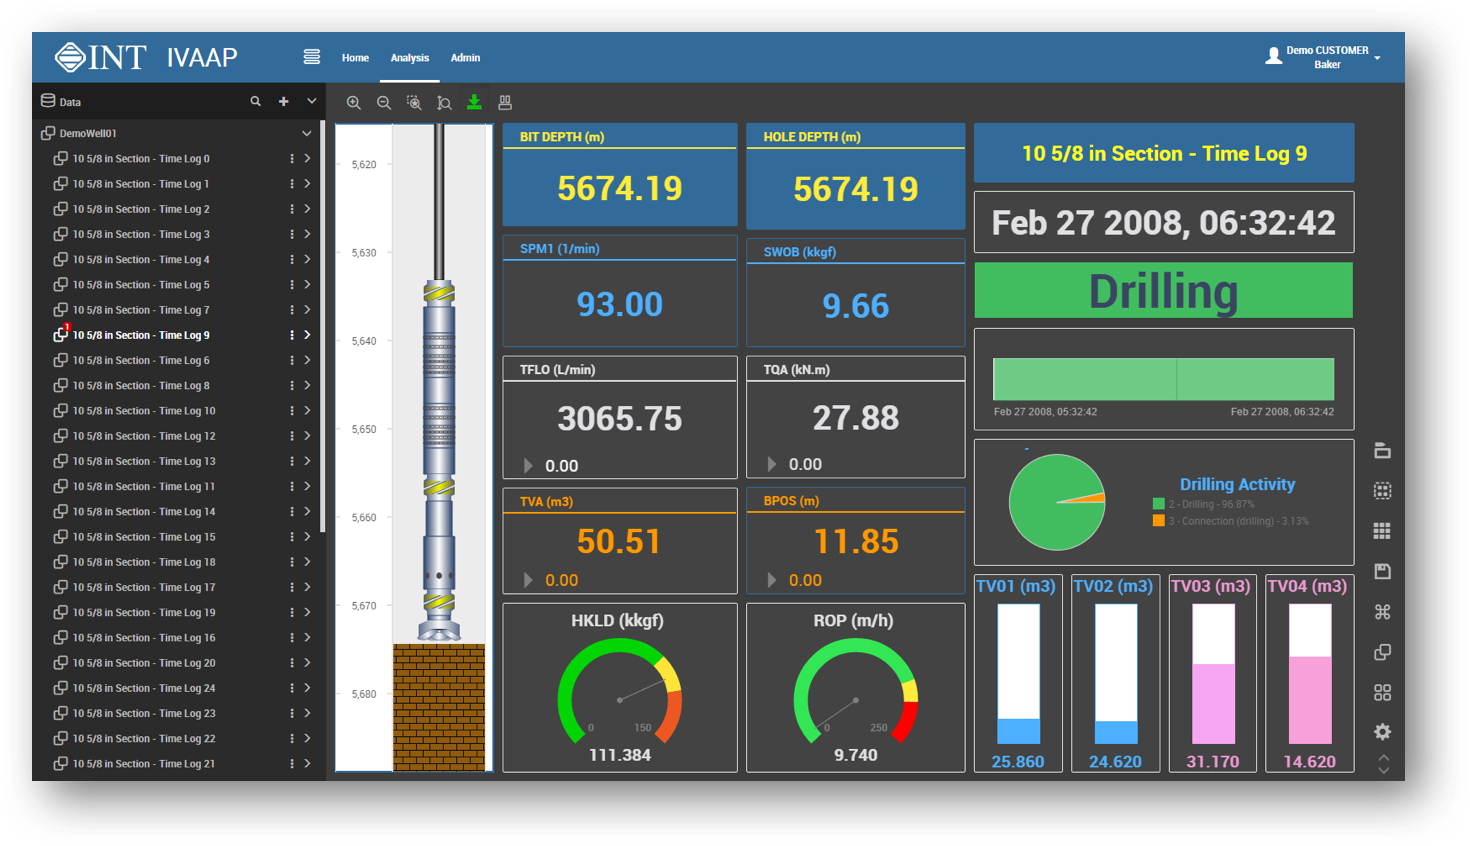 Ivaap Upstream Data Visualization And Analytics Platform Int Screenshots Of Schematic Display Areas Monitor Optimize Drilling Activity By Connecting To Real Time Sources All In One Place Build Dashboards Visualize Rig